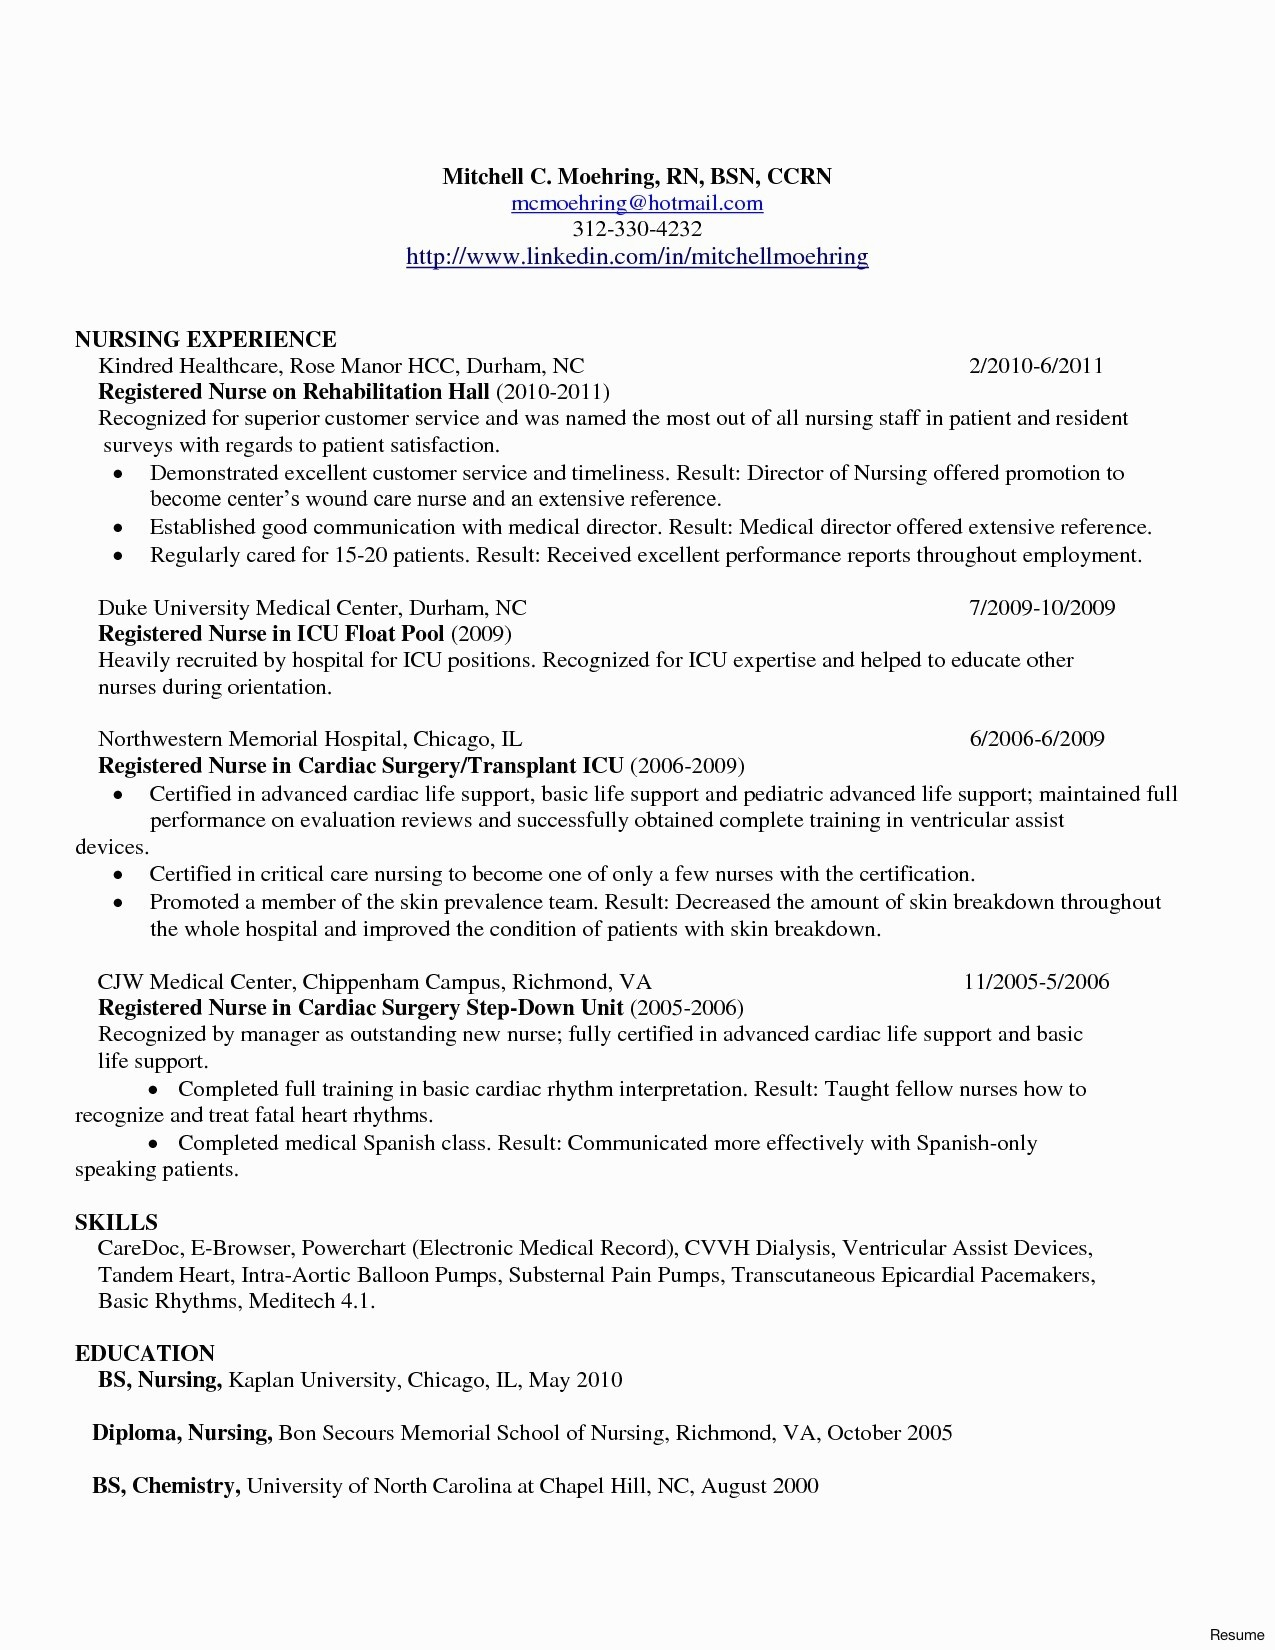 nursing school resume template Collection-Rn Resume Examples Nursing Home Elegant Elegant New Nurse Resume Awesome Nurse Resume 0d Wallpapers 42 6-g